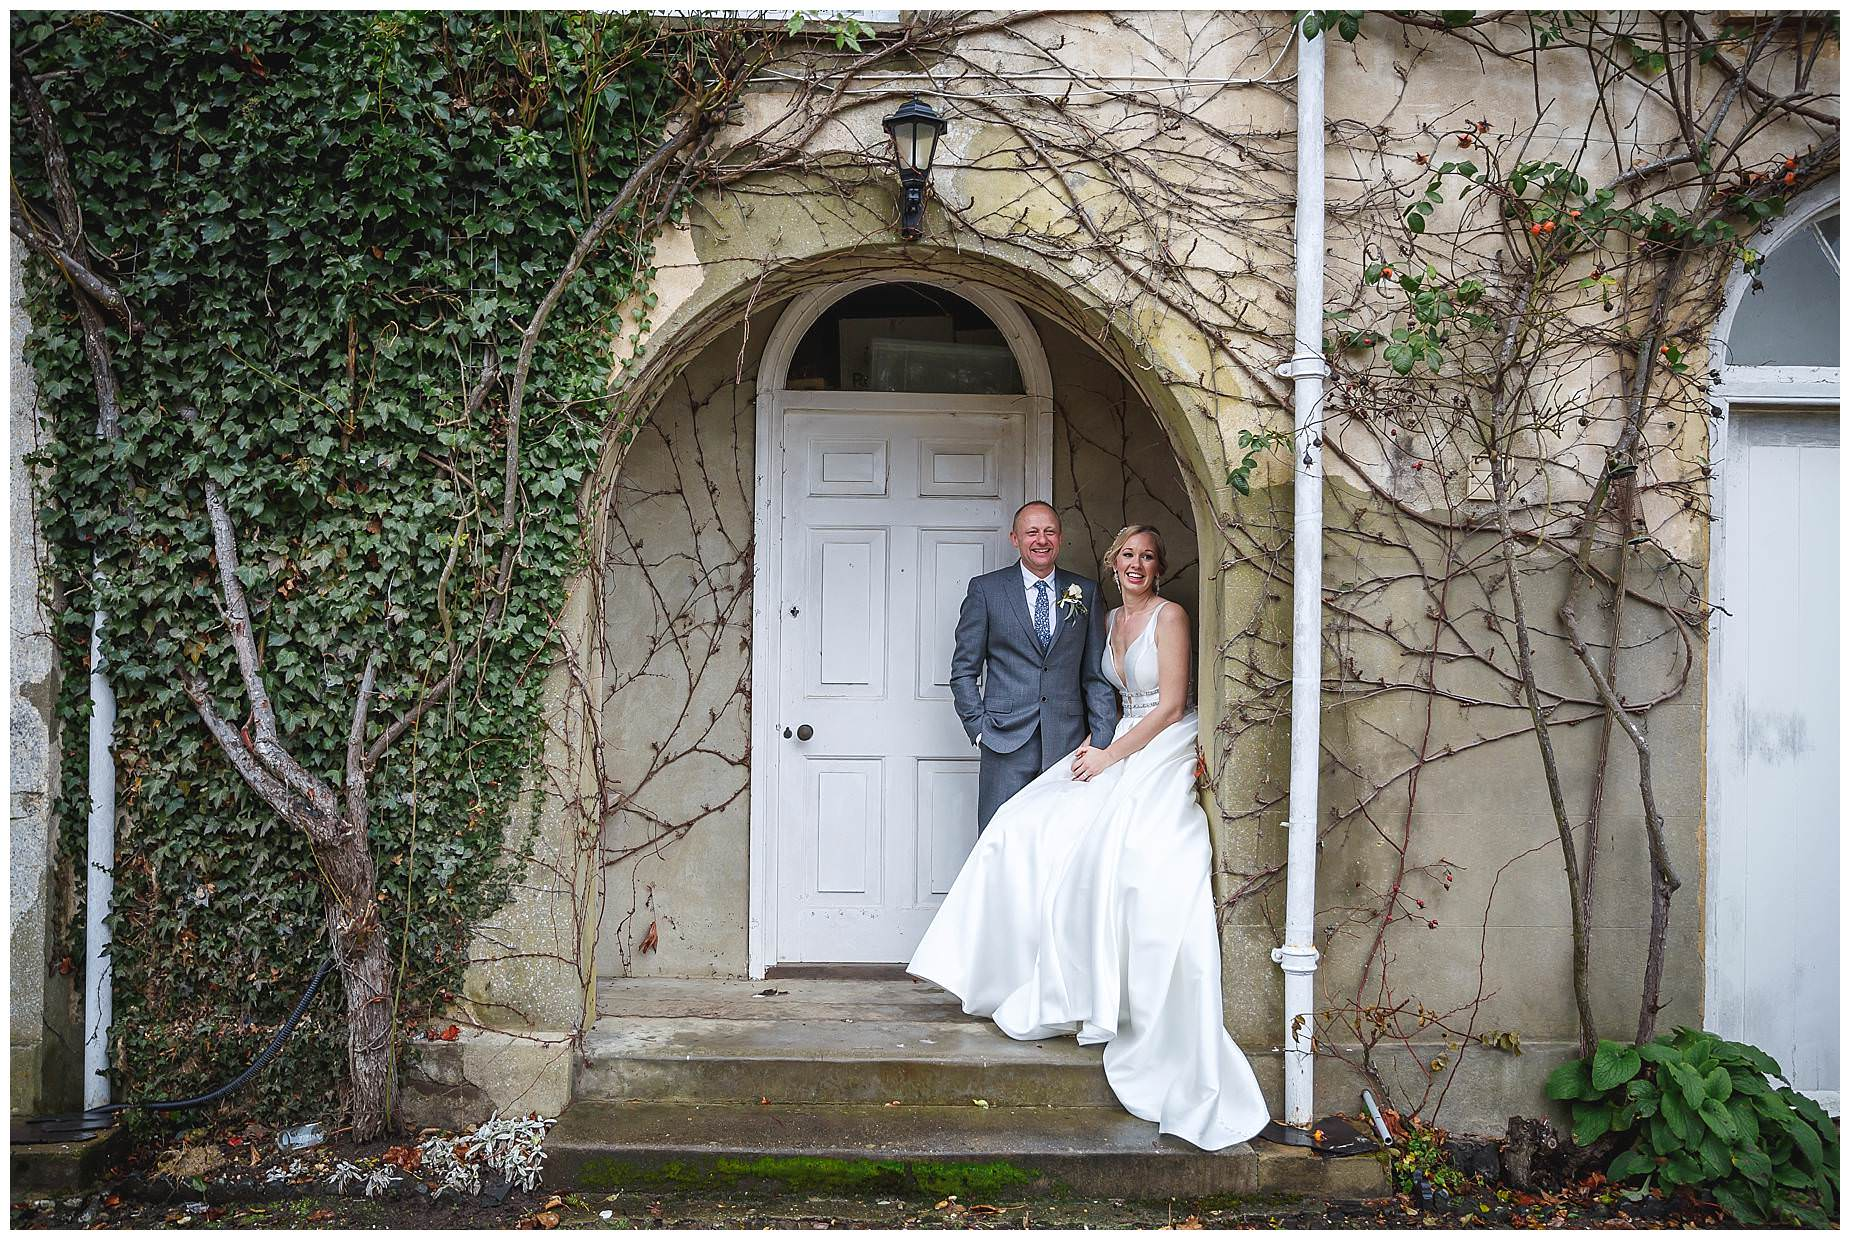 Northbrook Park winter wedding